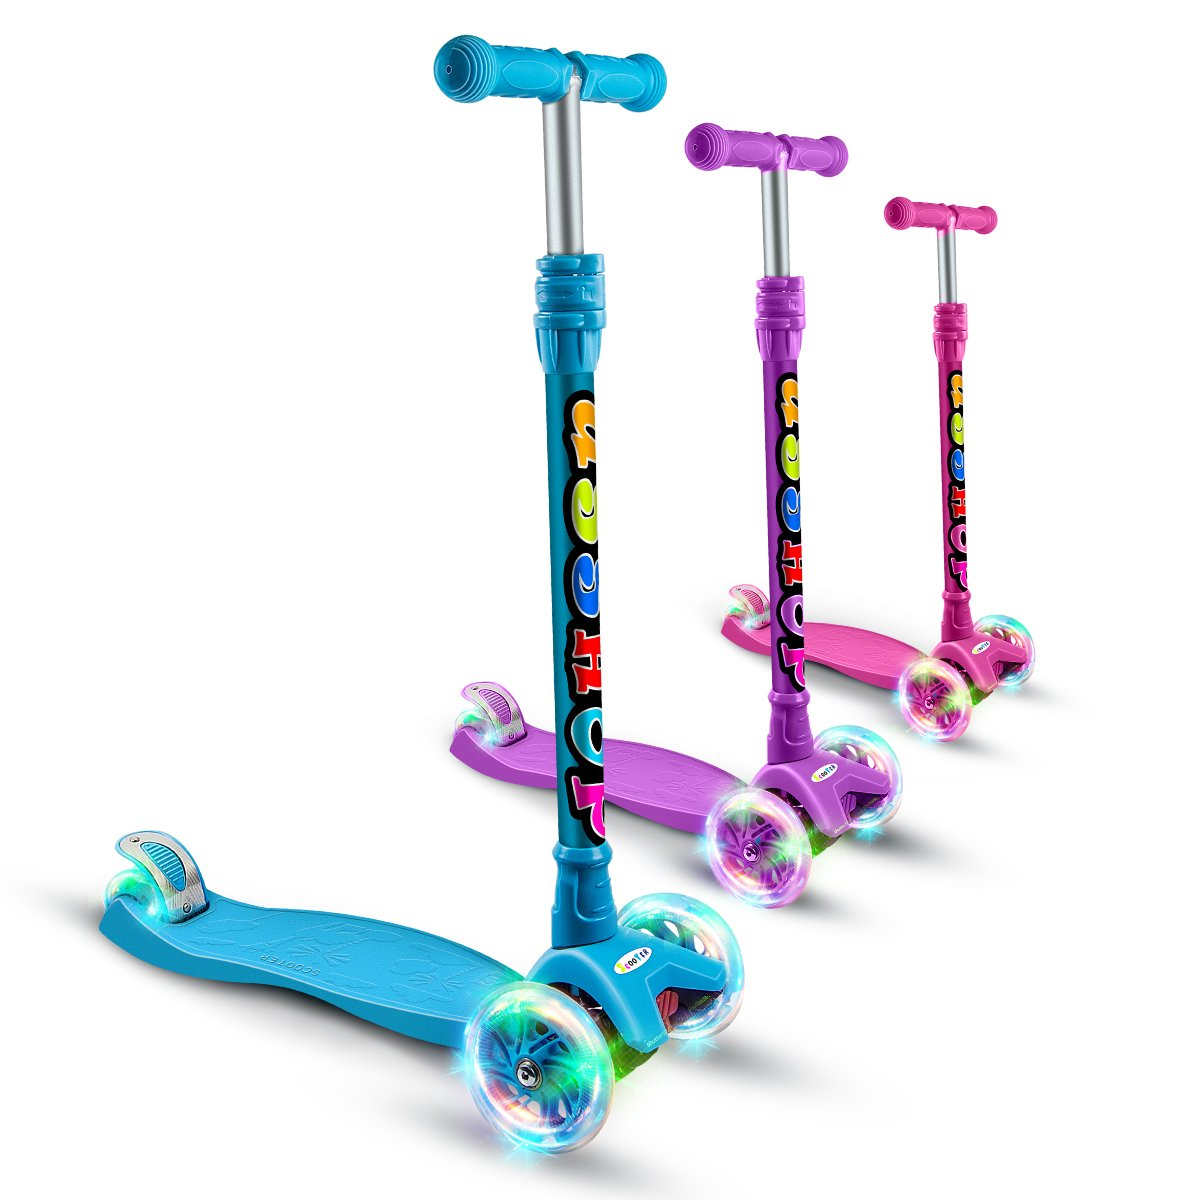 OUTON Kick Scooter For Kids 3 Wheel Scooter Lean To Steer 4 Adjustable Height Glider Ride On PU Flashing Wheels for Children 3-12 Year Old All Parts 10 Years Warranty Blue